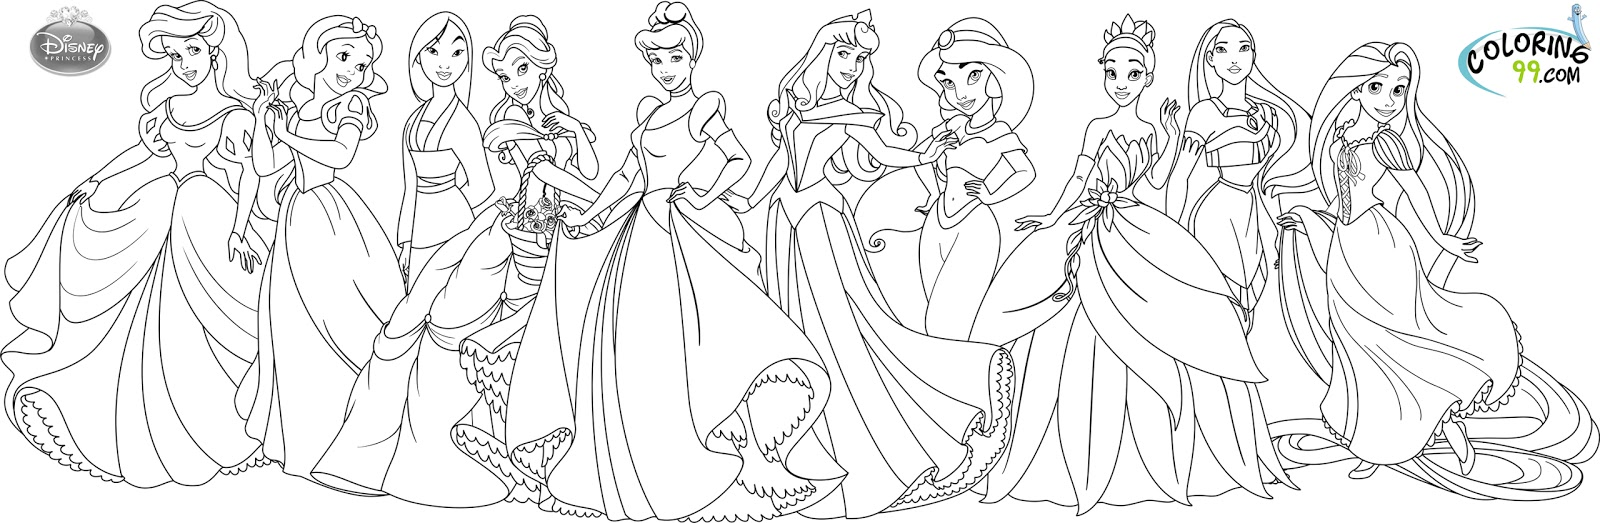 Disney Princess Coloring Pages Team Colors Disney Princesses Coloring Page